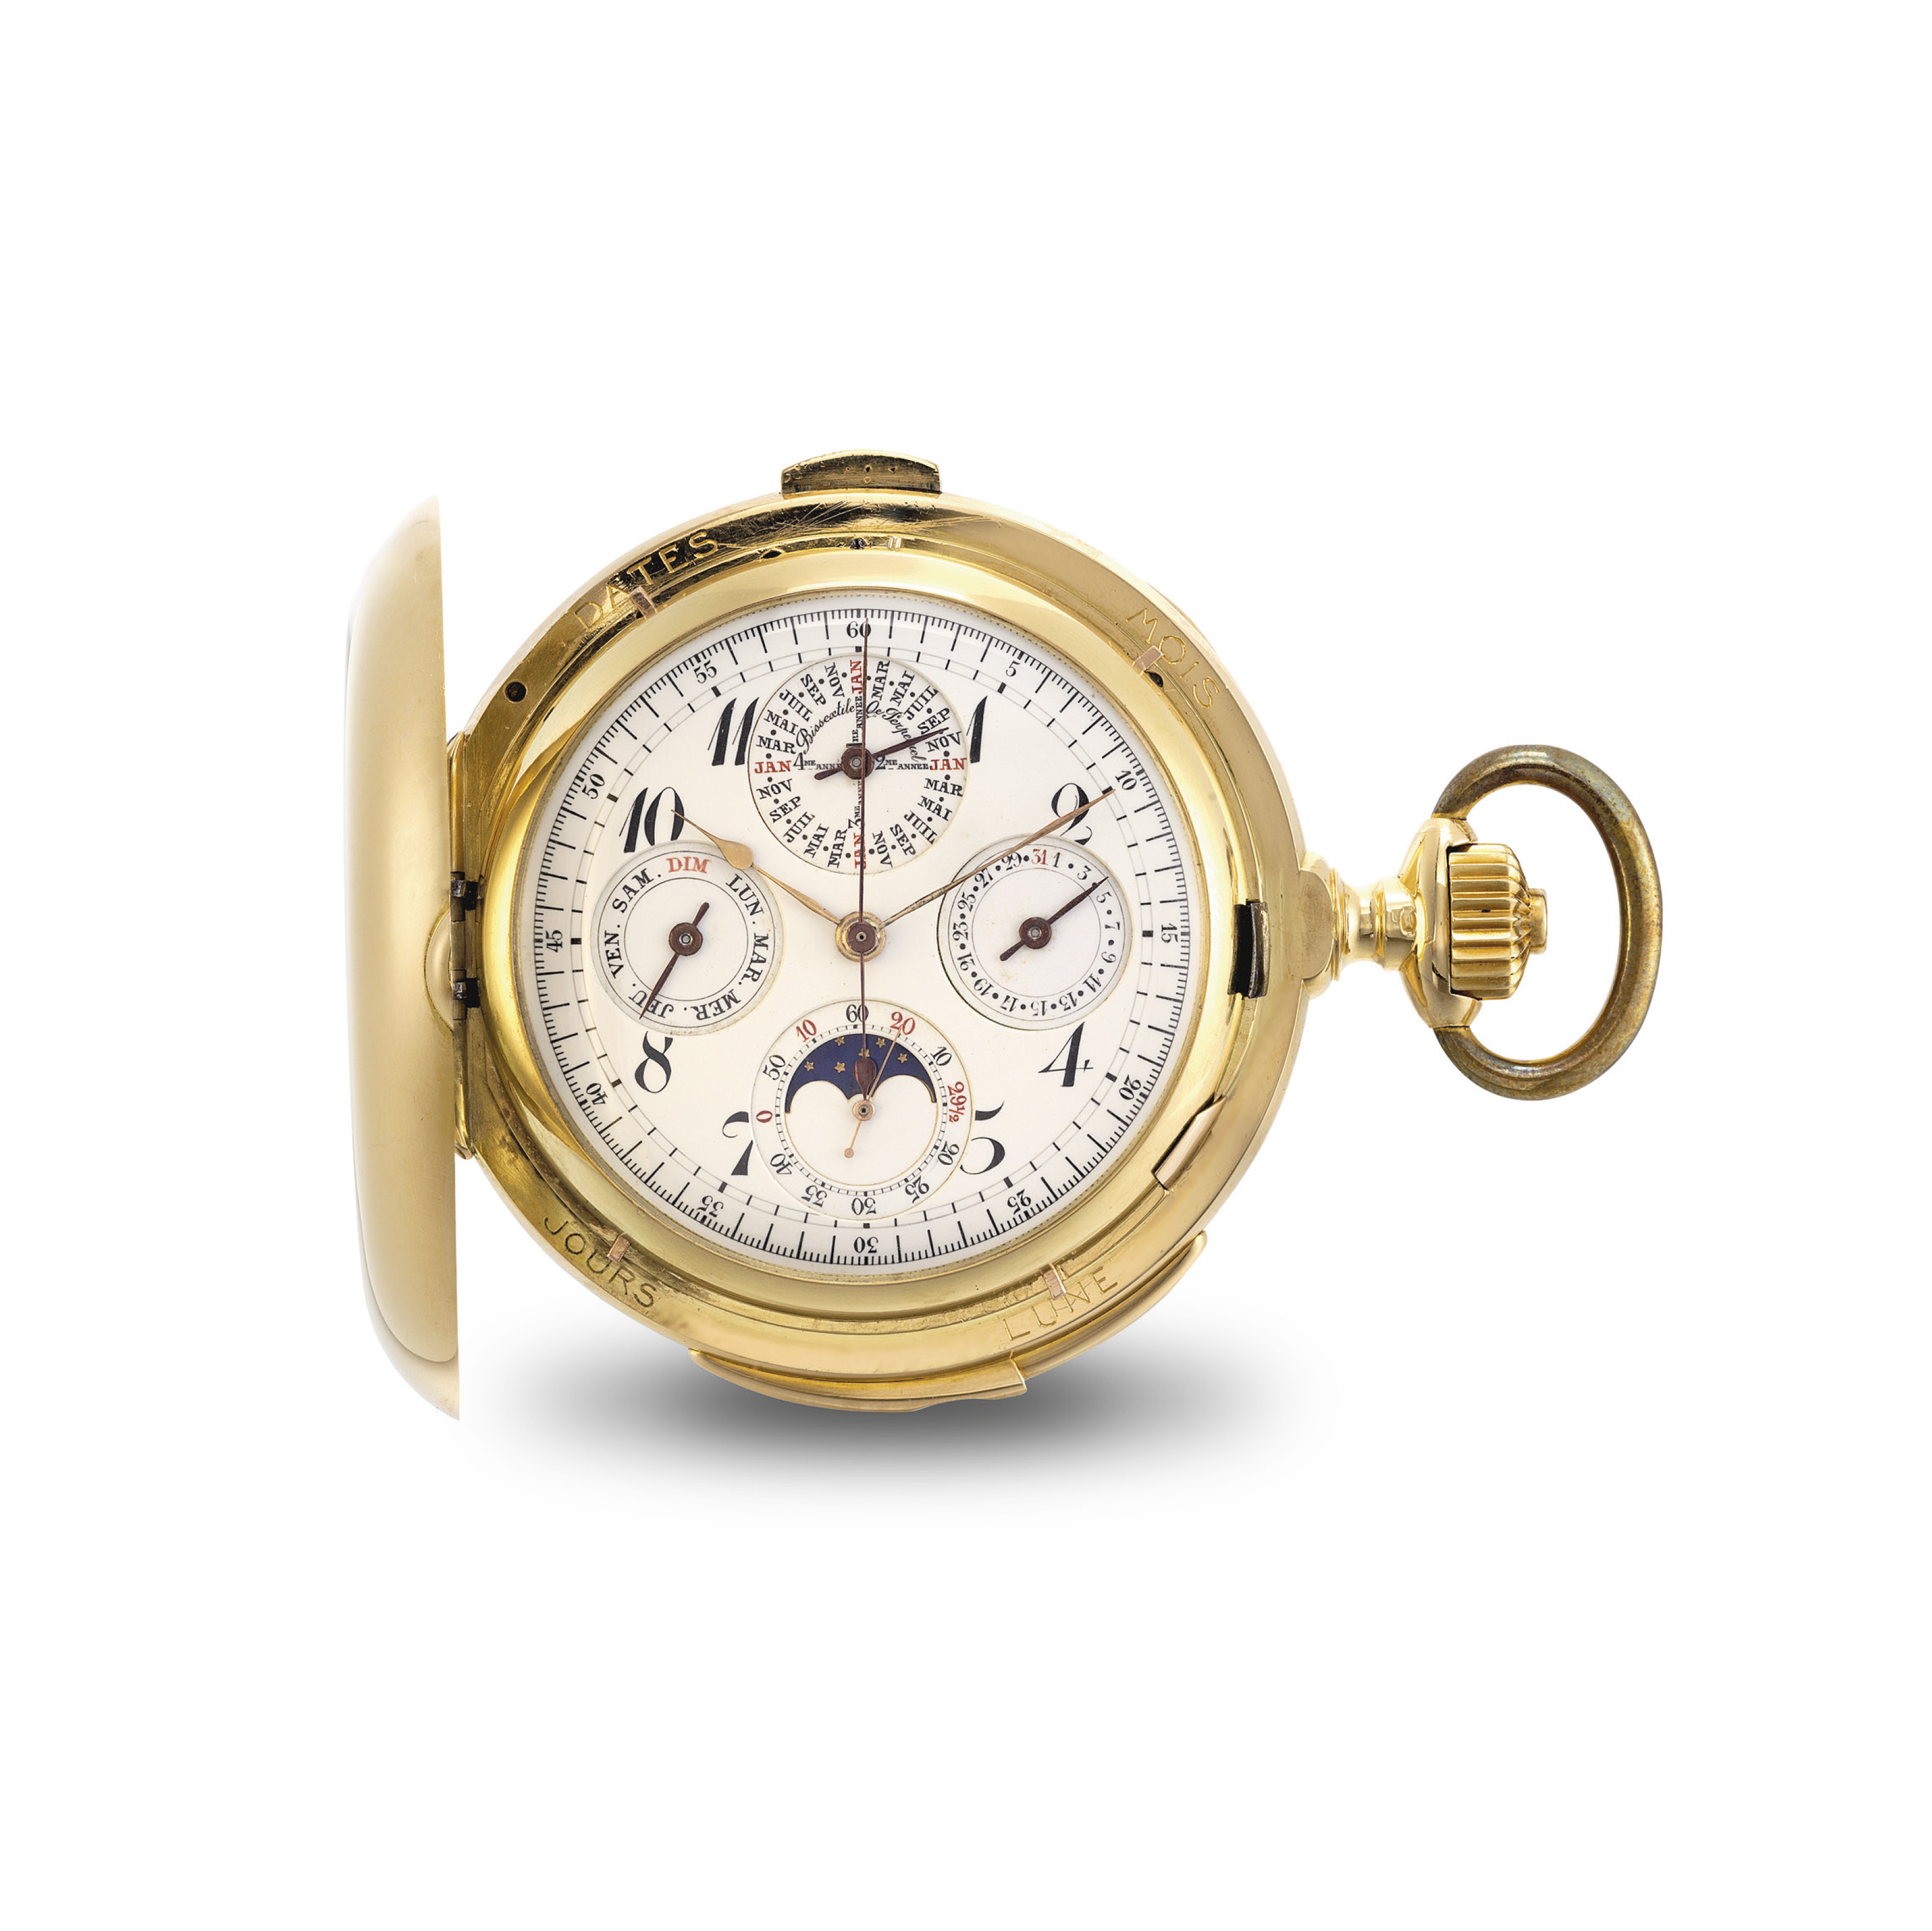 LEROY. A FINE GOLD HUNTER CASE MINUTE REPEATING PERPETUAL CALENDAR CHRONOGRAPH KEYLESS LEVER WATCH WITH MOON PHASES AND LEAP YEAR INDICATION AND BOX